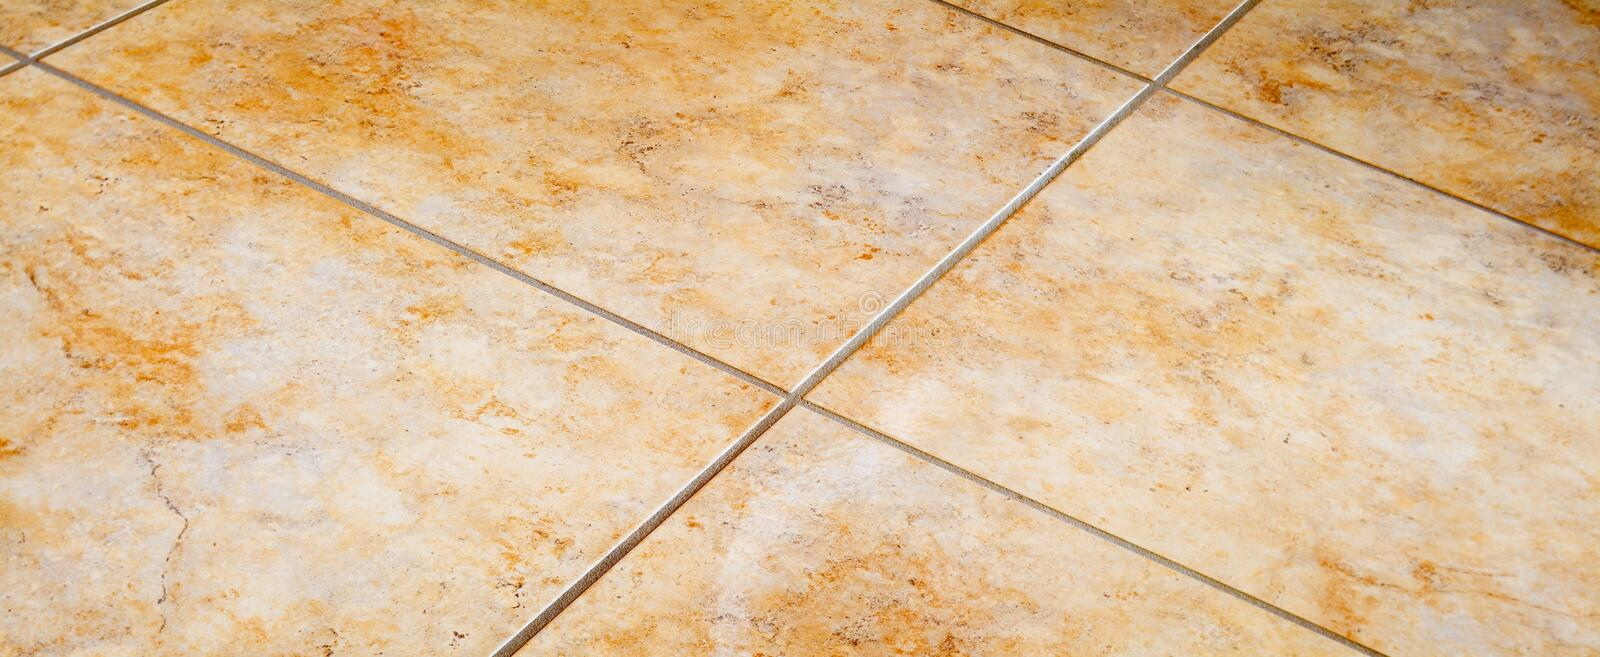 Download Tiled floor stock photo. Image of architecture, pattern - 27369530